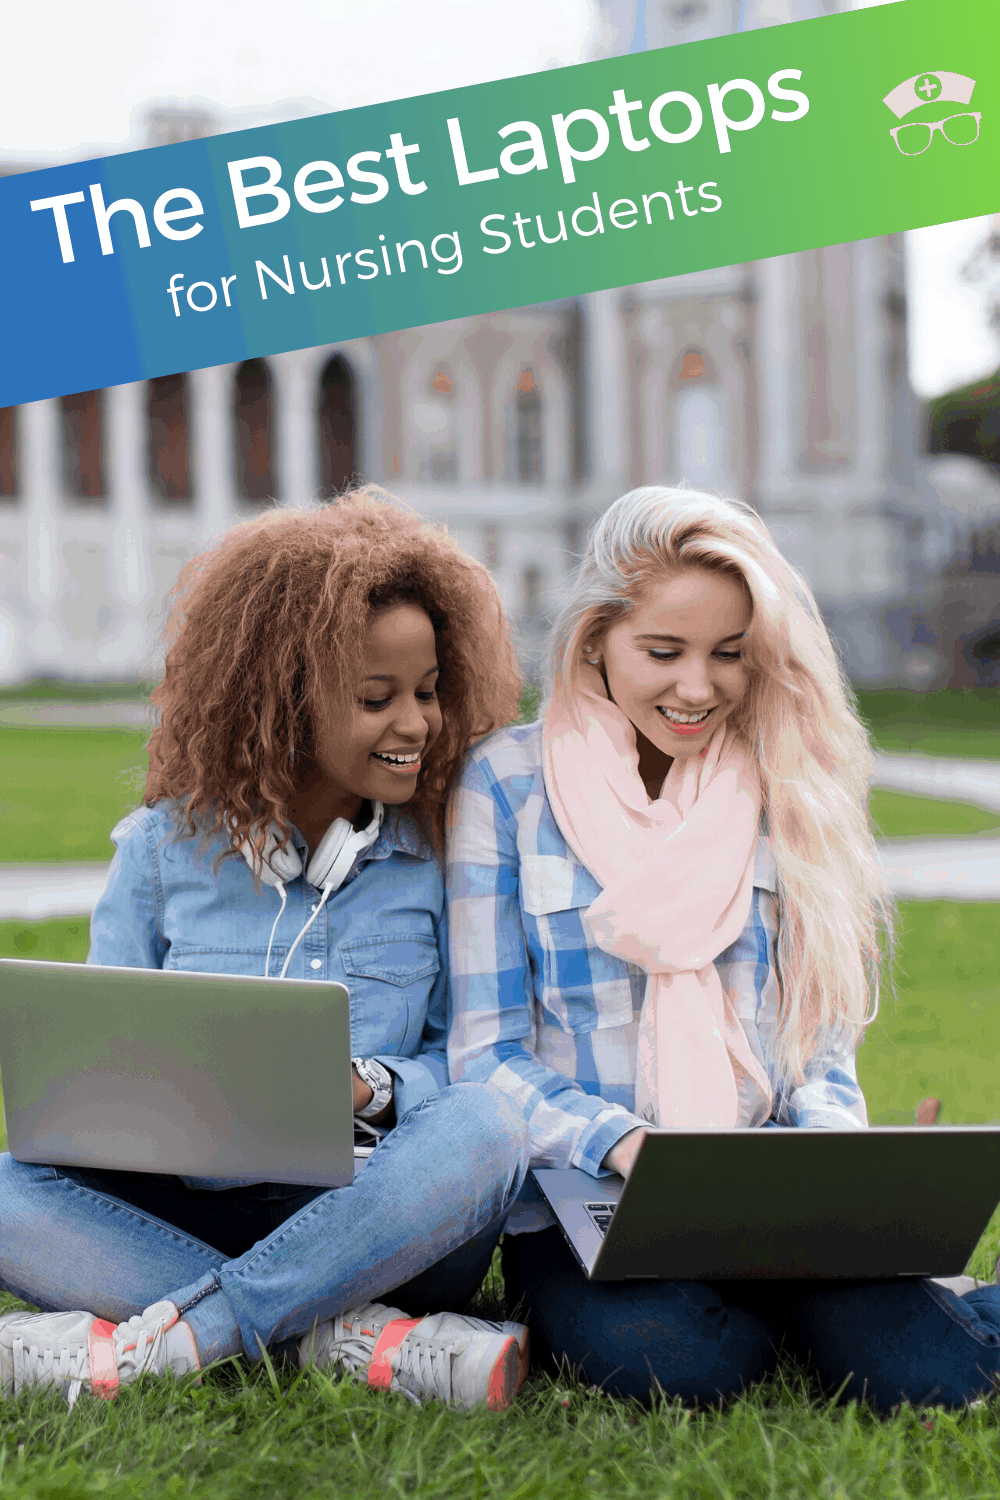 The Best Laptops for Nursing Students. These are the best laptops for nursing students. You don't have to spend a lot of money to get a dependable computer. Compare Mac to PC! #thenerdynurse #nurse #nurses #nursingstudent #studentnurse #nursingschool #productsfornurses #laptop